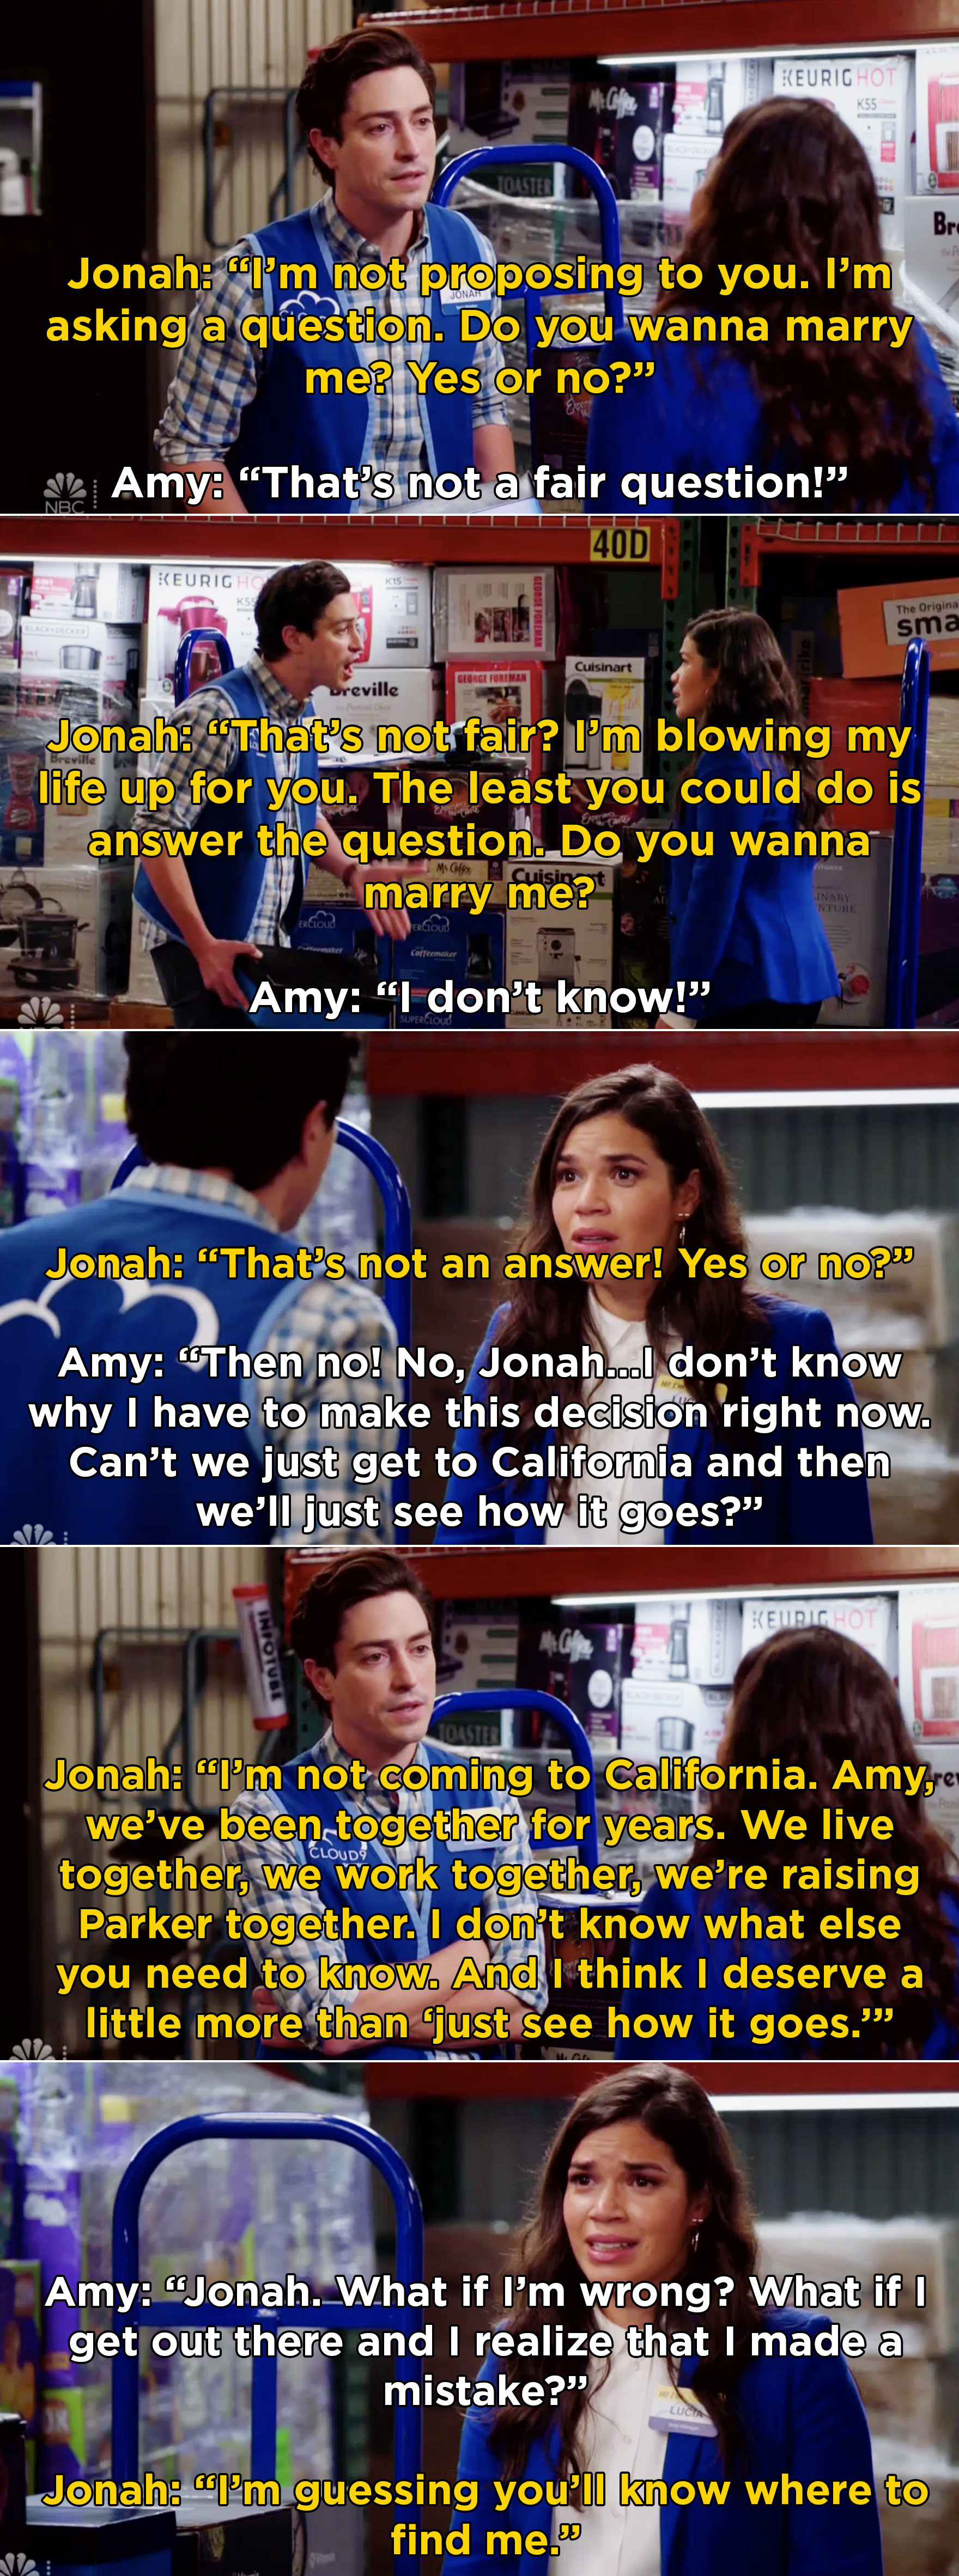 Amy saying that she doesn't want to marry Jonah